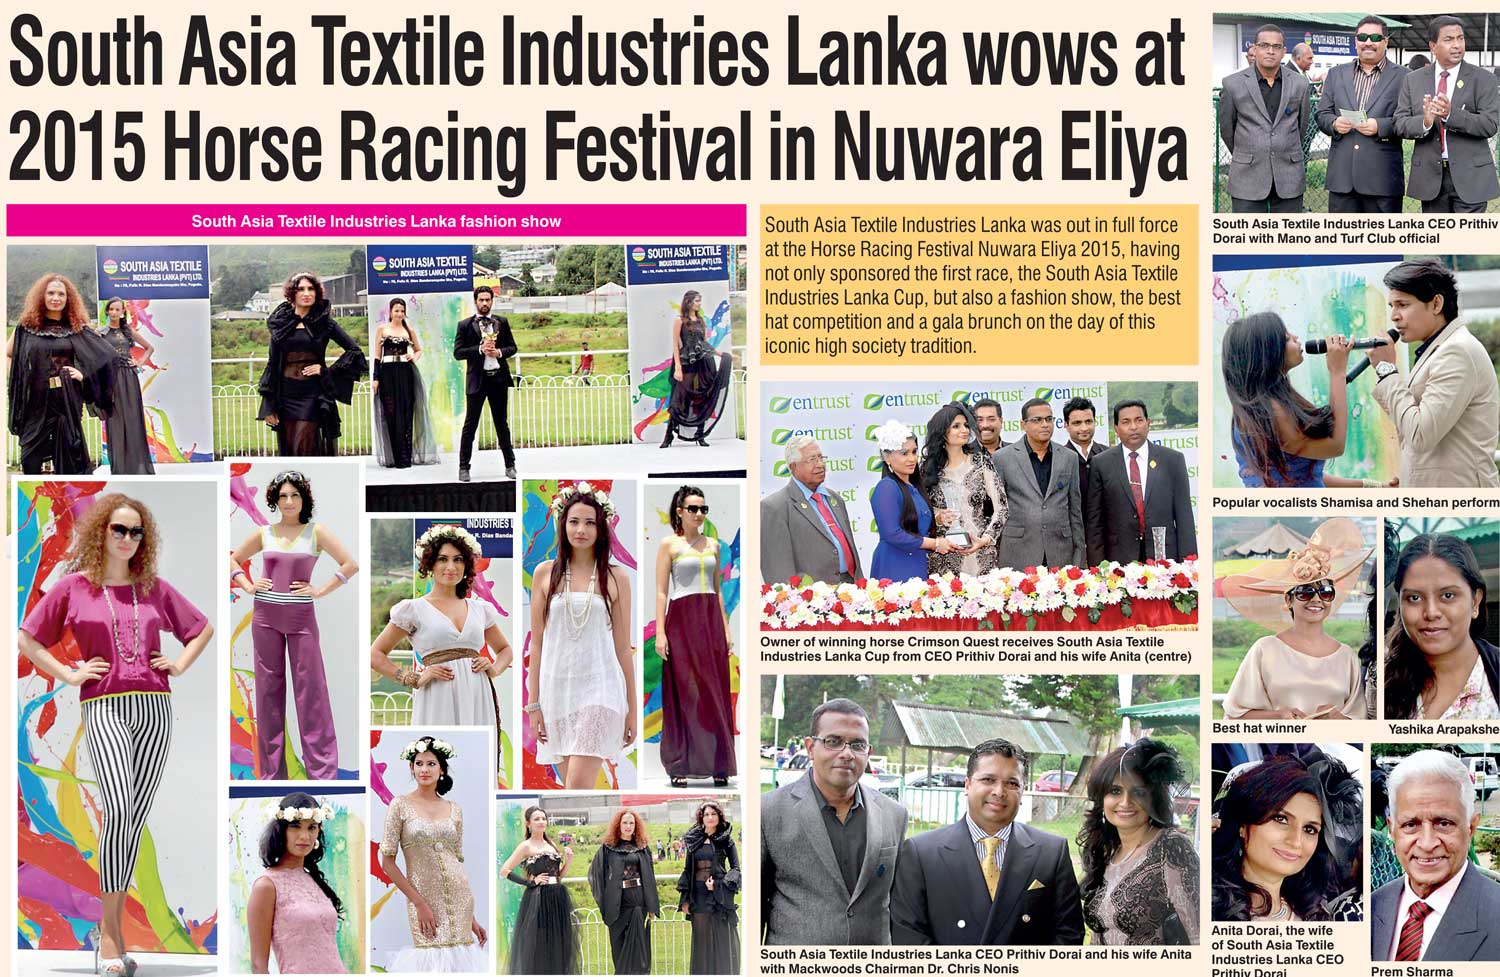 South Asia Textile Industries Lanka wows at 2015 Horse Racing